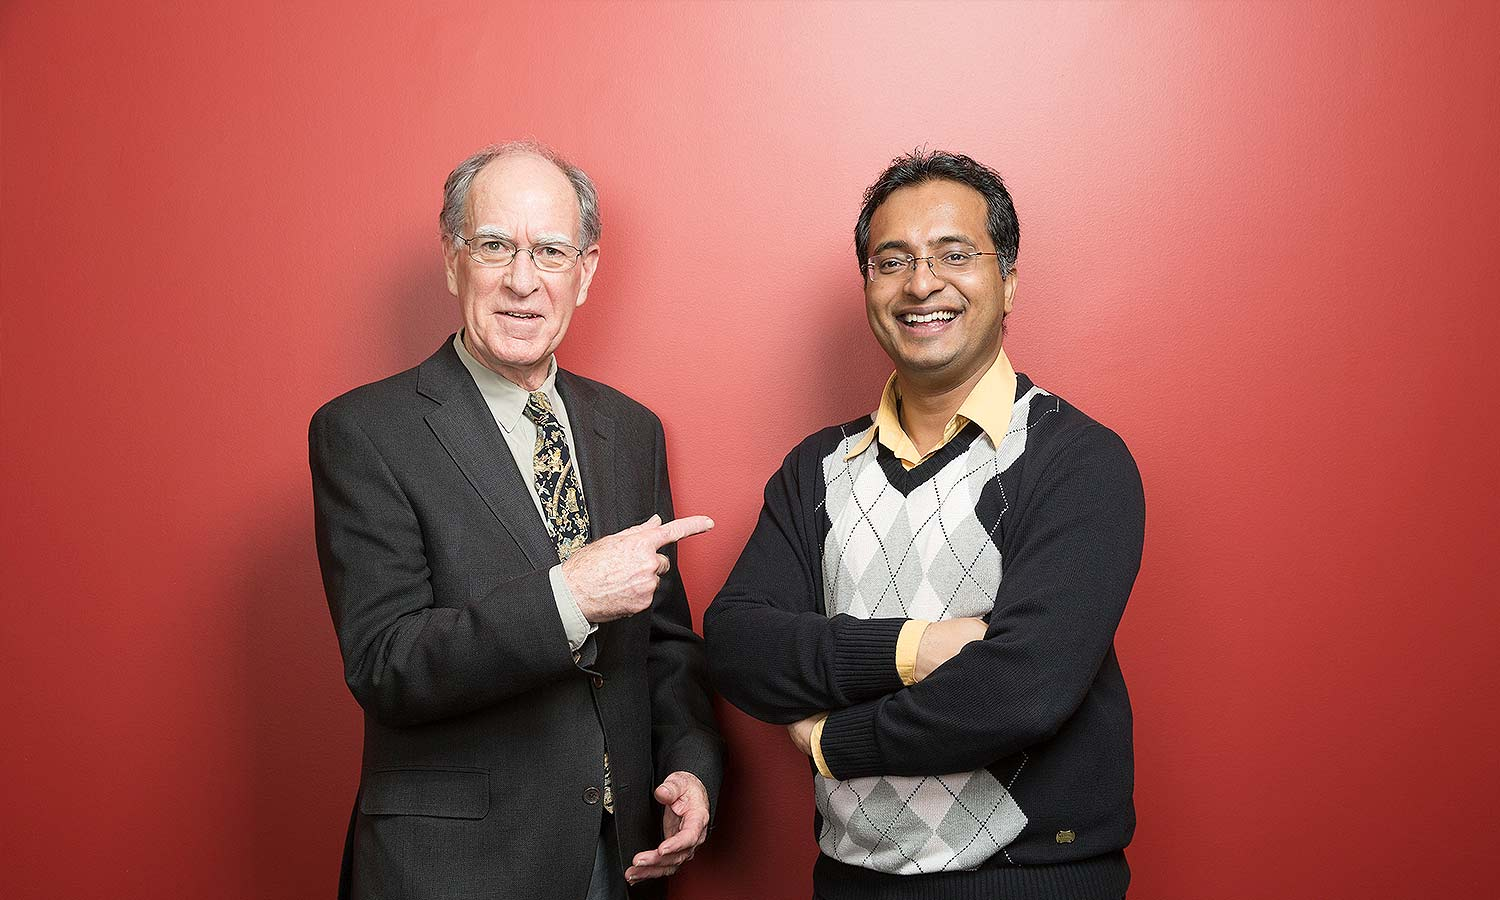 Dean David Cameron of the Faculty of Arts & Science (left) and Jaby Mathew, recipient of the 2013 Robert C. Vipond Graduate Scholarship in Political Science, to which Cameron is a donor.